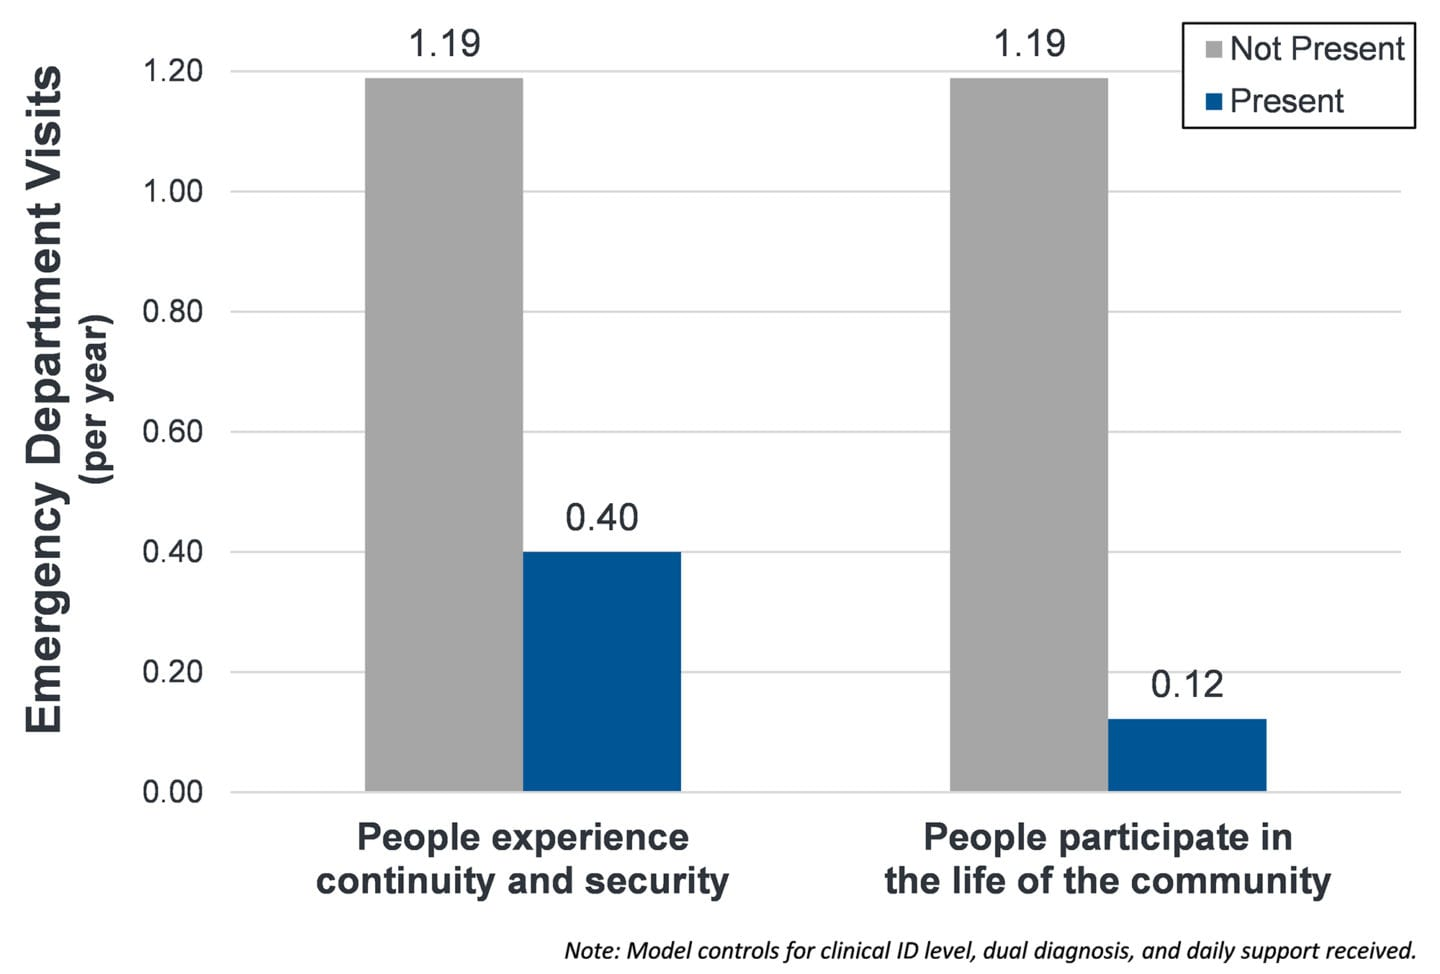 Graph that shows that people who participate in the life of the community and experience continuity and security visit the ER significantly less often.